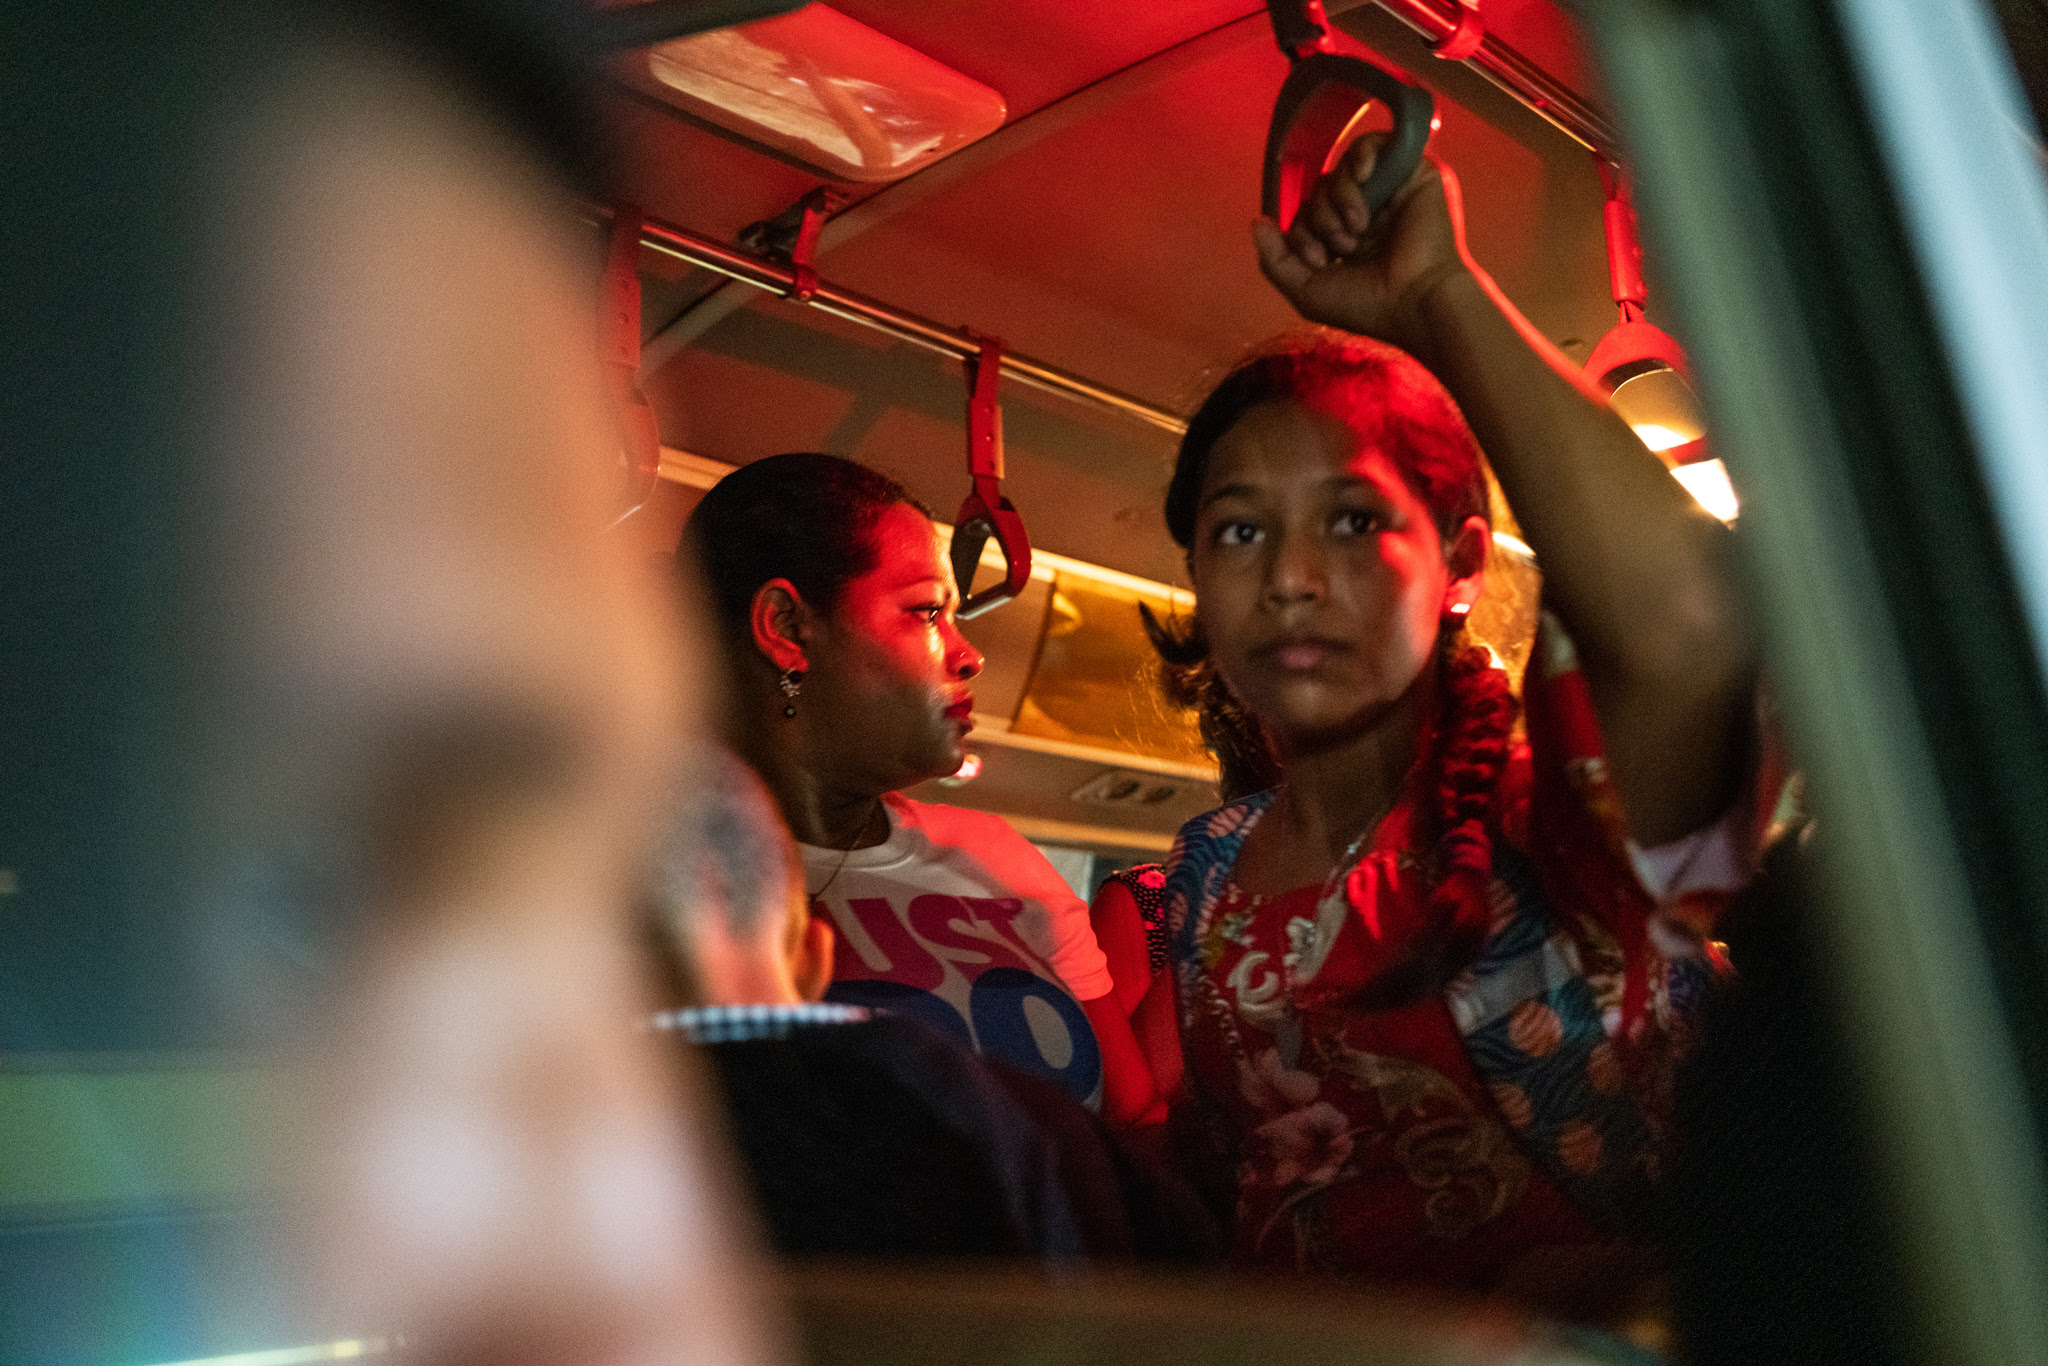 Buses ferry workers to and from their jobs at a clothing factory in Choloma, Honduras, one of the most dangerous cities for women in the world.